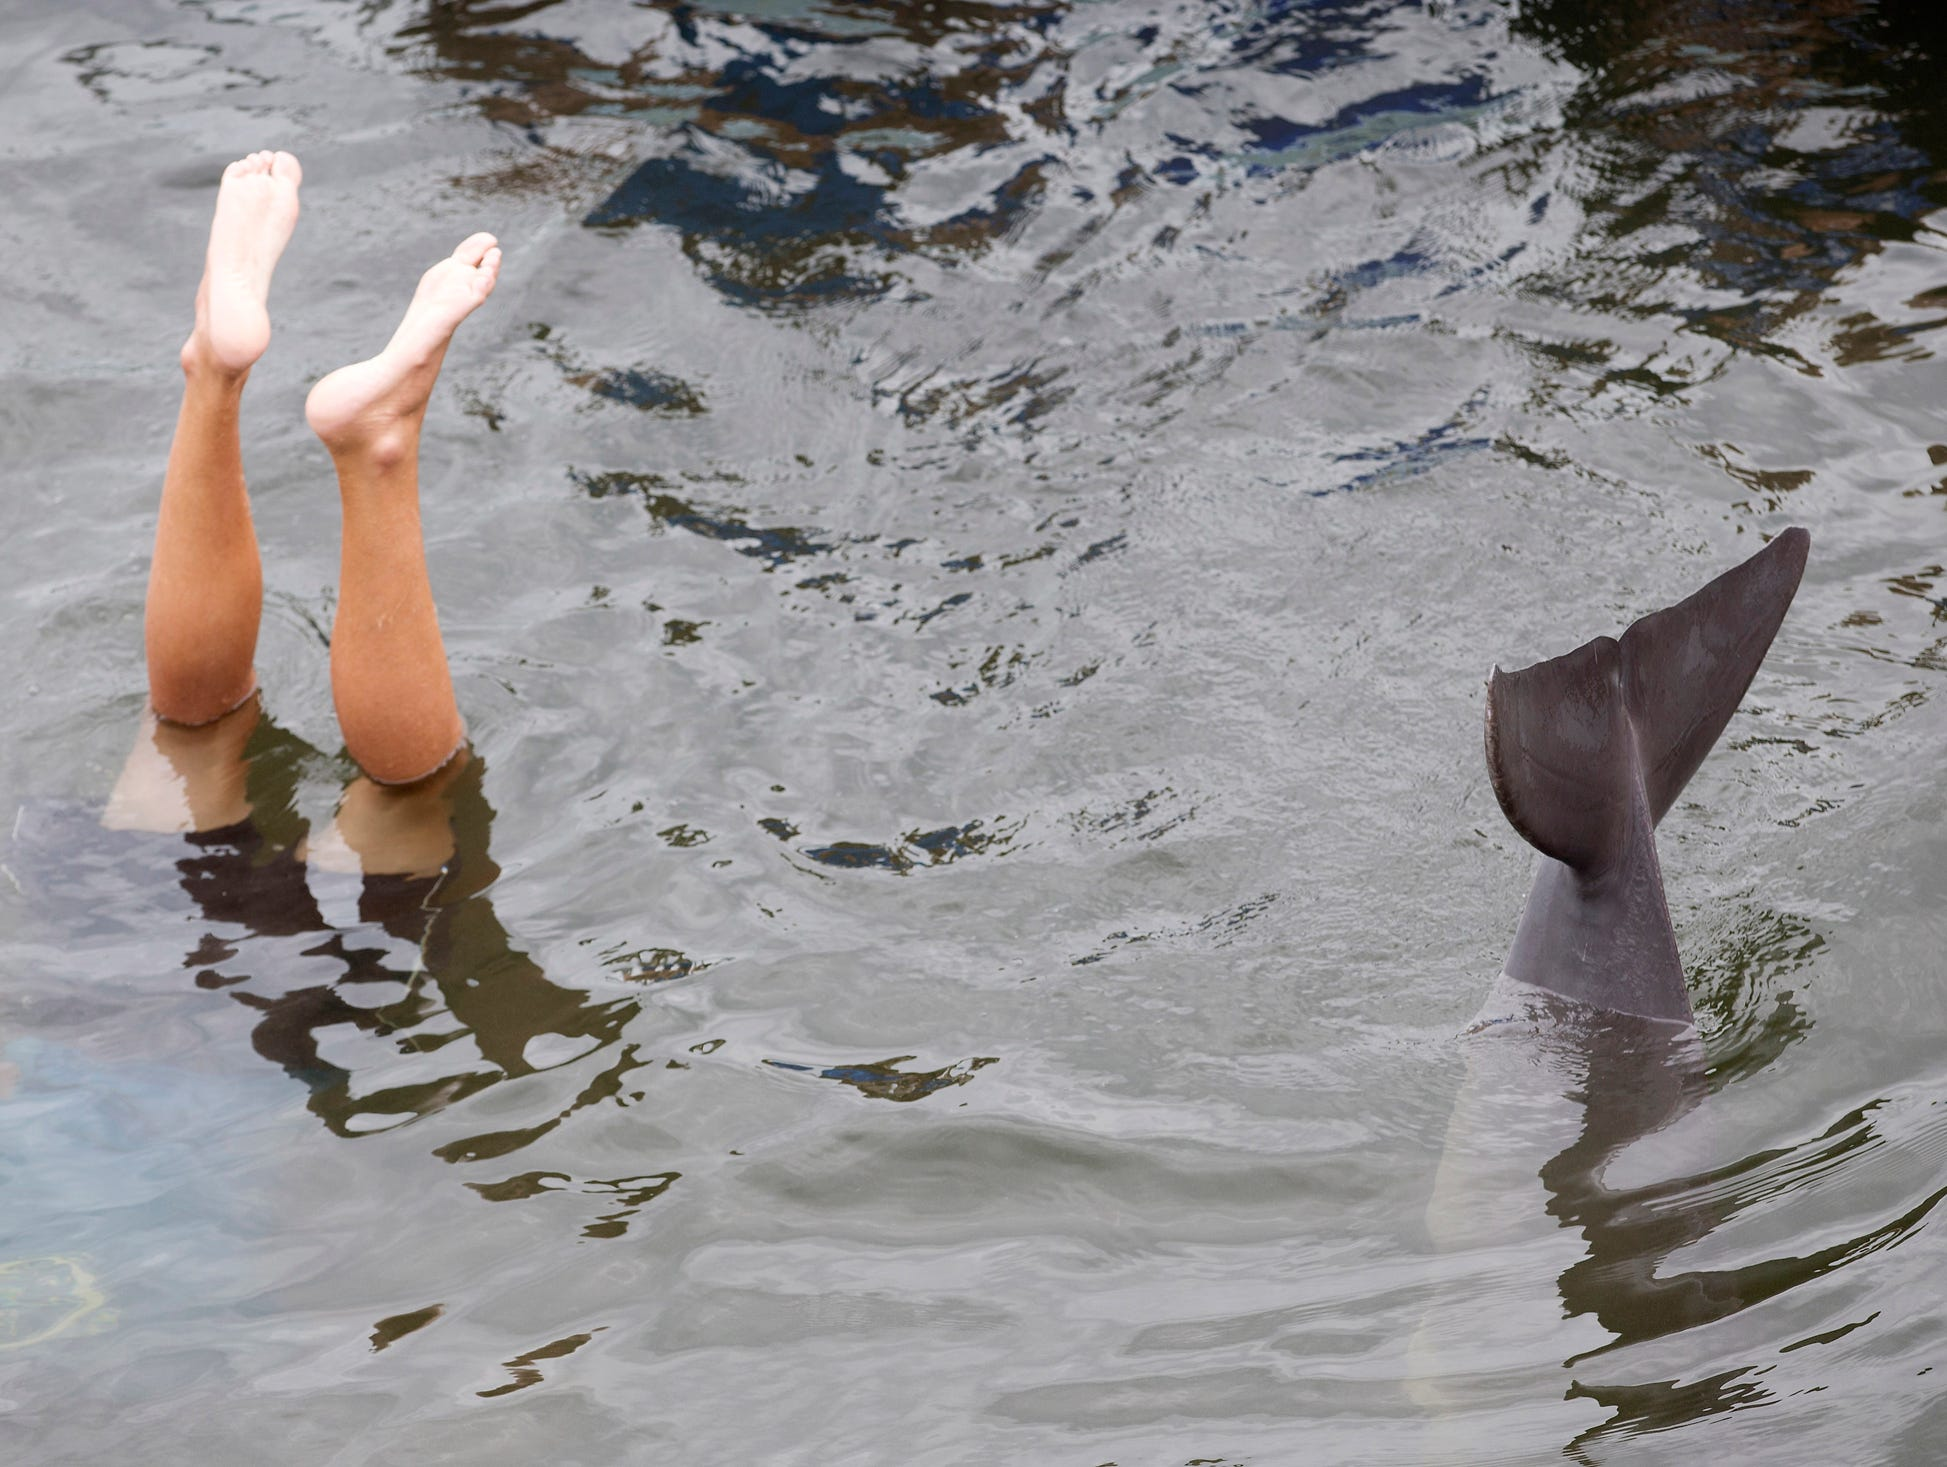 Tanner copies the behavior of trainer Wade Davey, left, during a demonstration at the Dolphin Research Center.